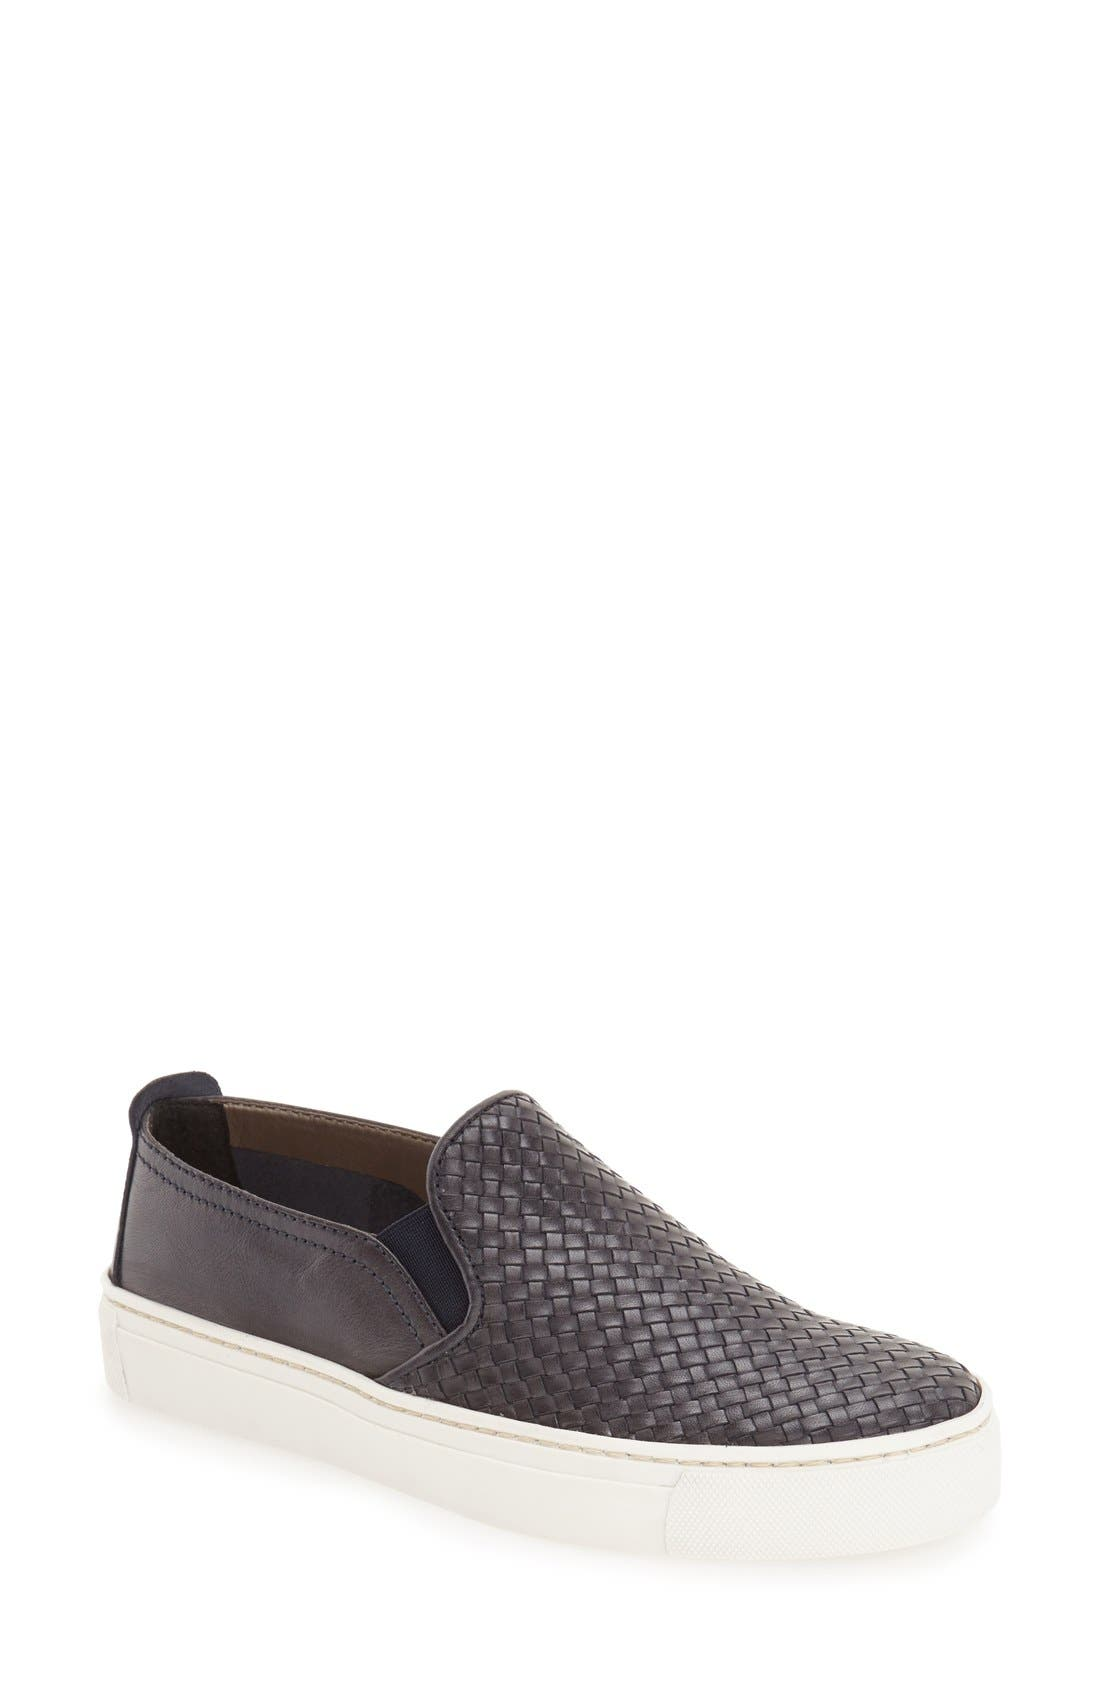 A latticework of soft woven leather pairs with an ultra-flexible rubber sole in a modern sneaker with a classic slip-on profile. Tonal elastic goring and a generously padded footbed ensure a comfortable fit. Style Name: The Flexx \\\'sneak Name\\\' Sneaker (Women). Style Number: 5199604. Available in stores.